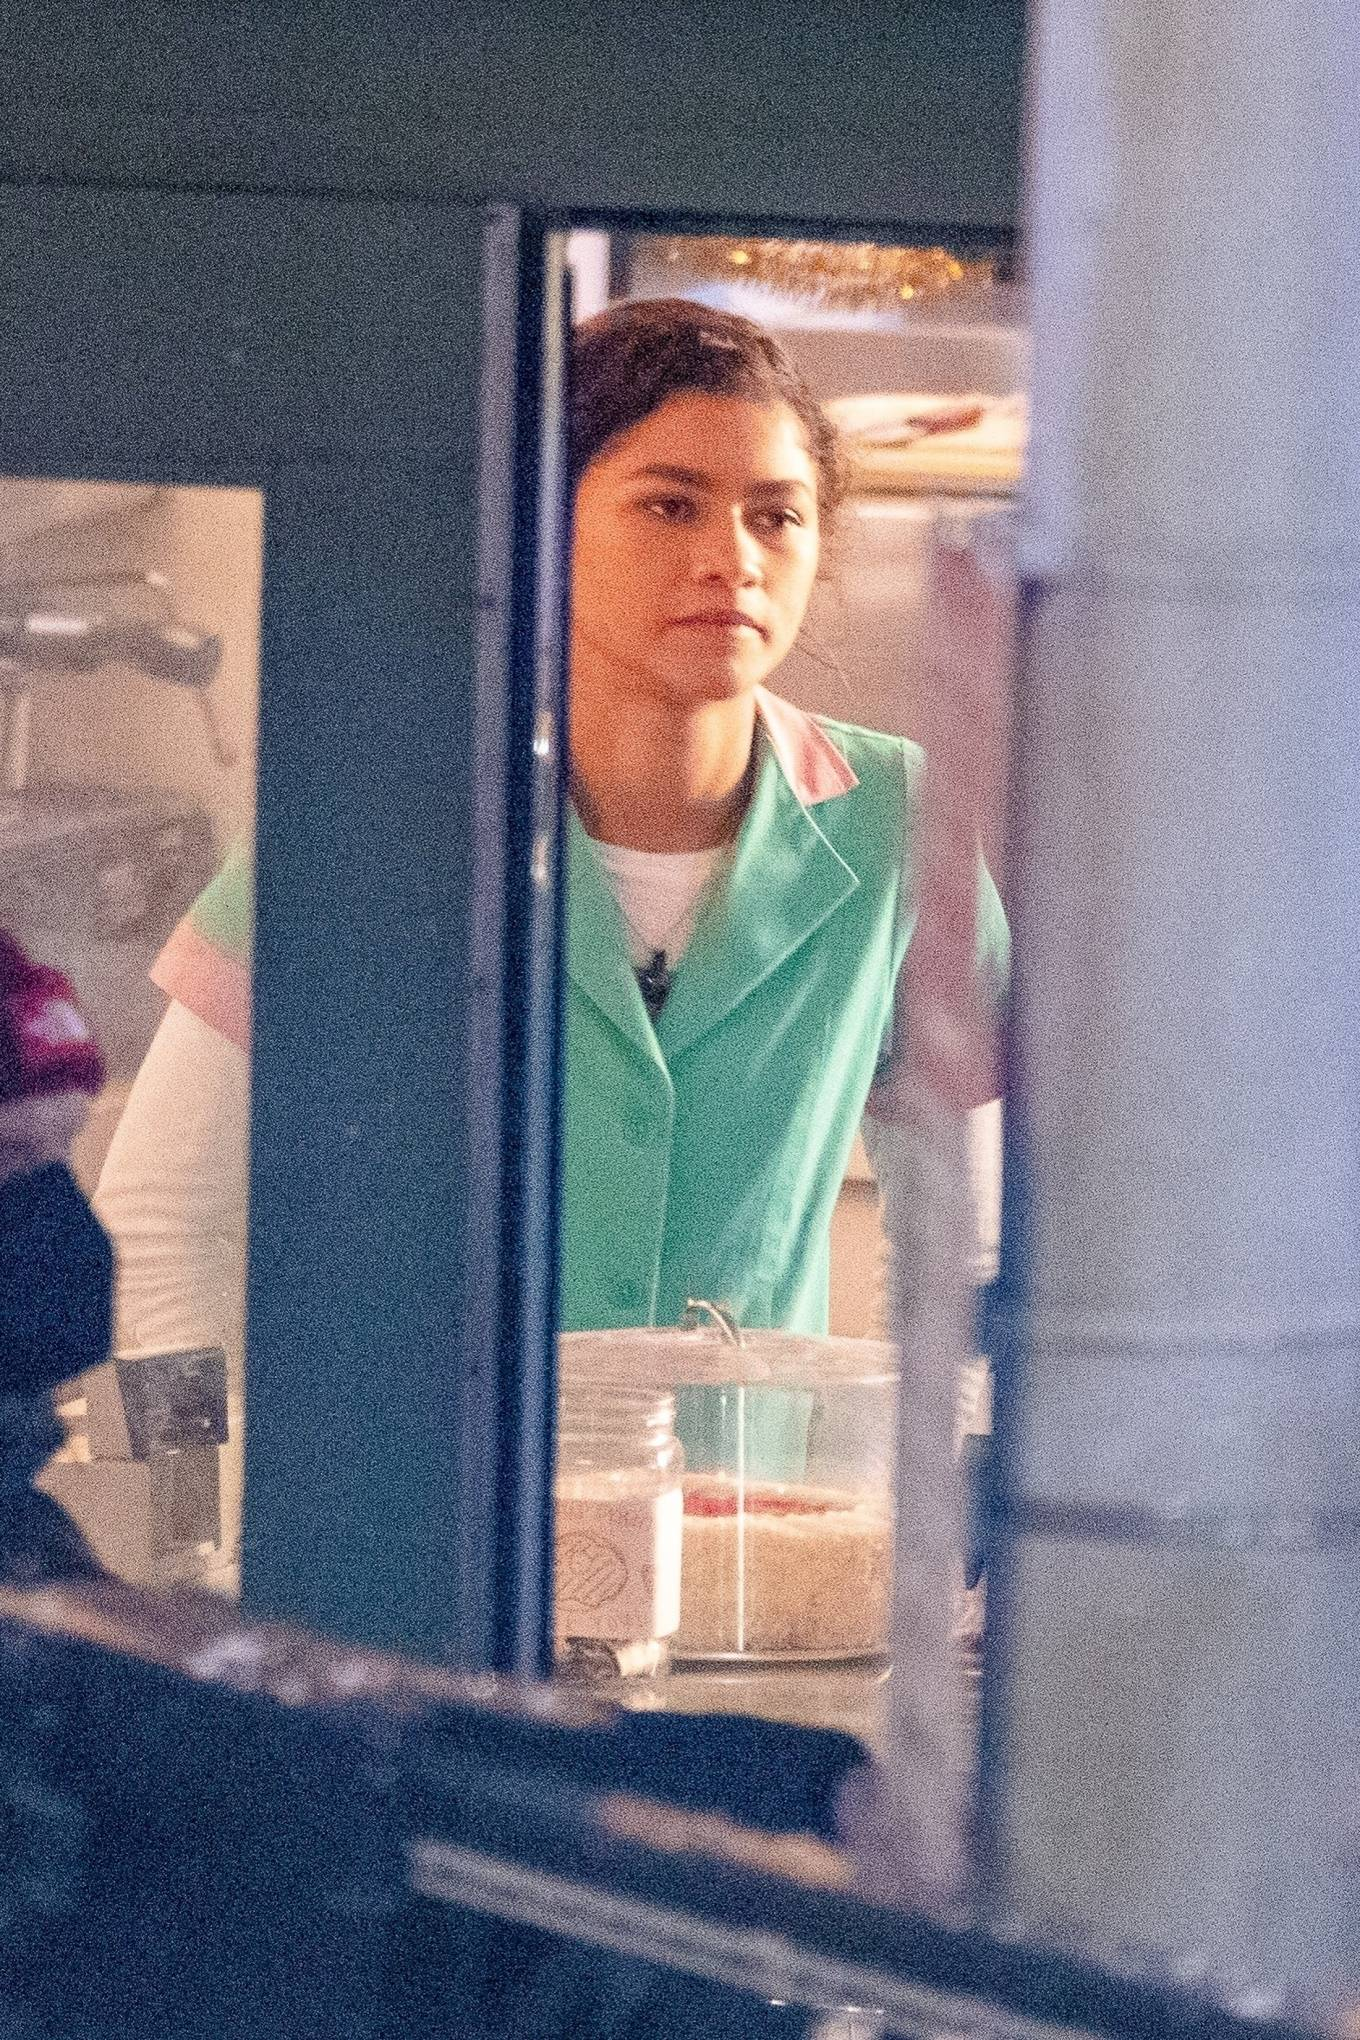 Zendaya Coleman - Filming latest Spider-Man movie in Atlanta